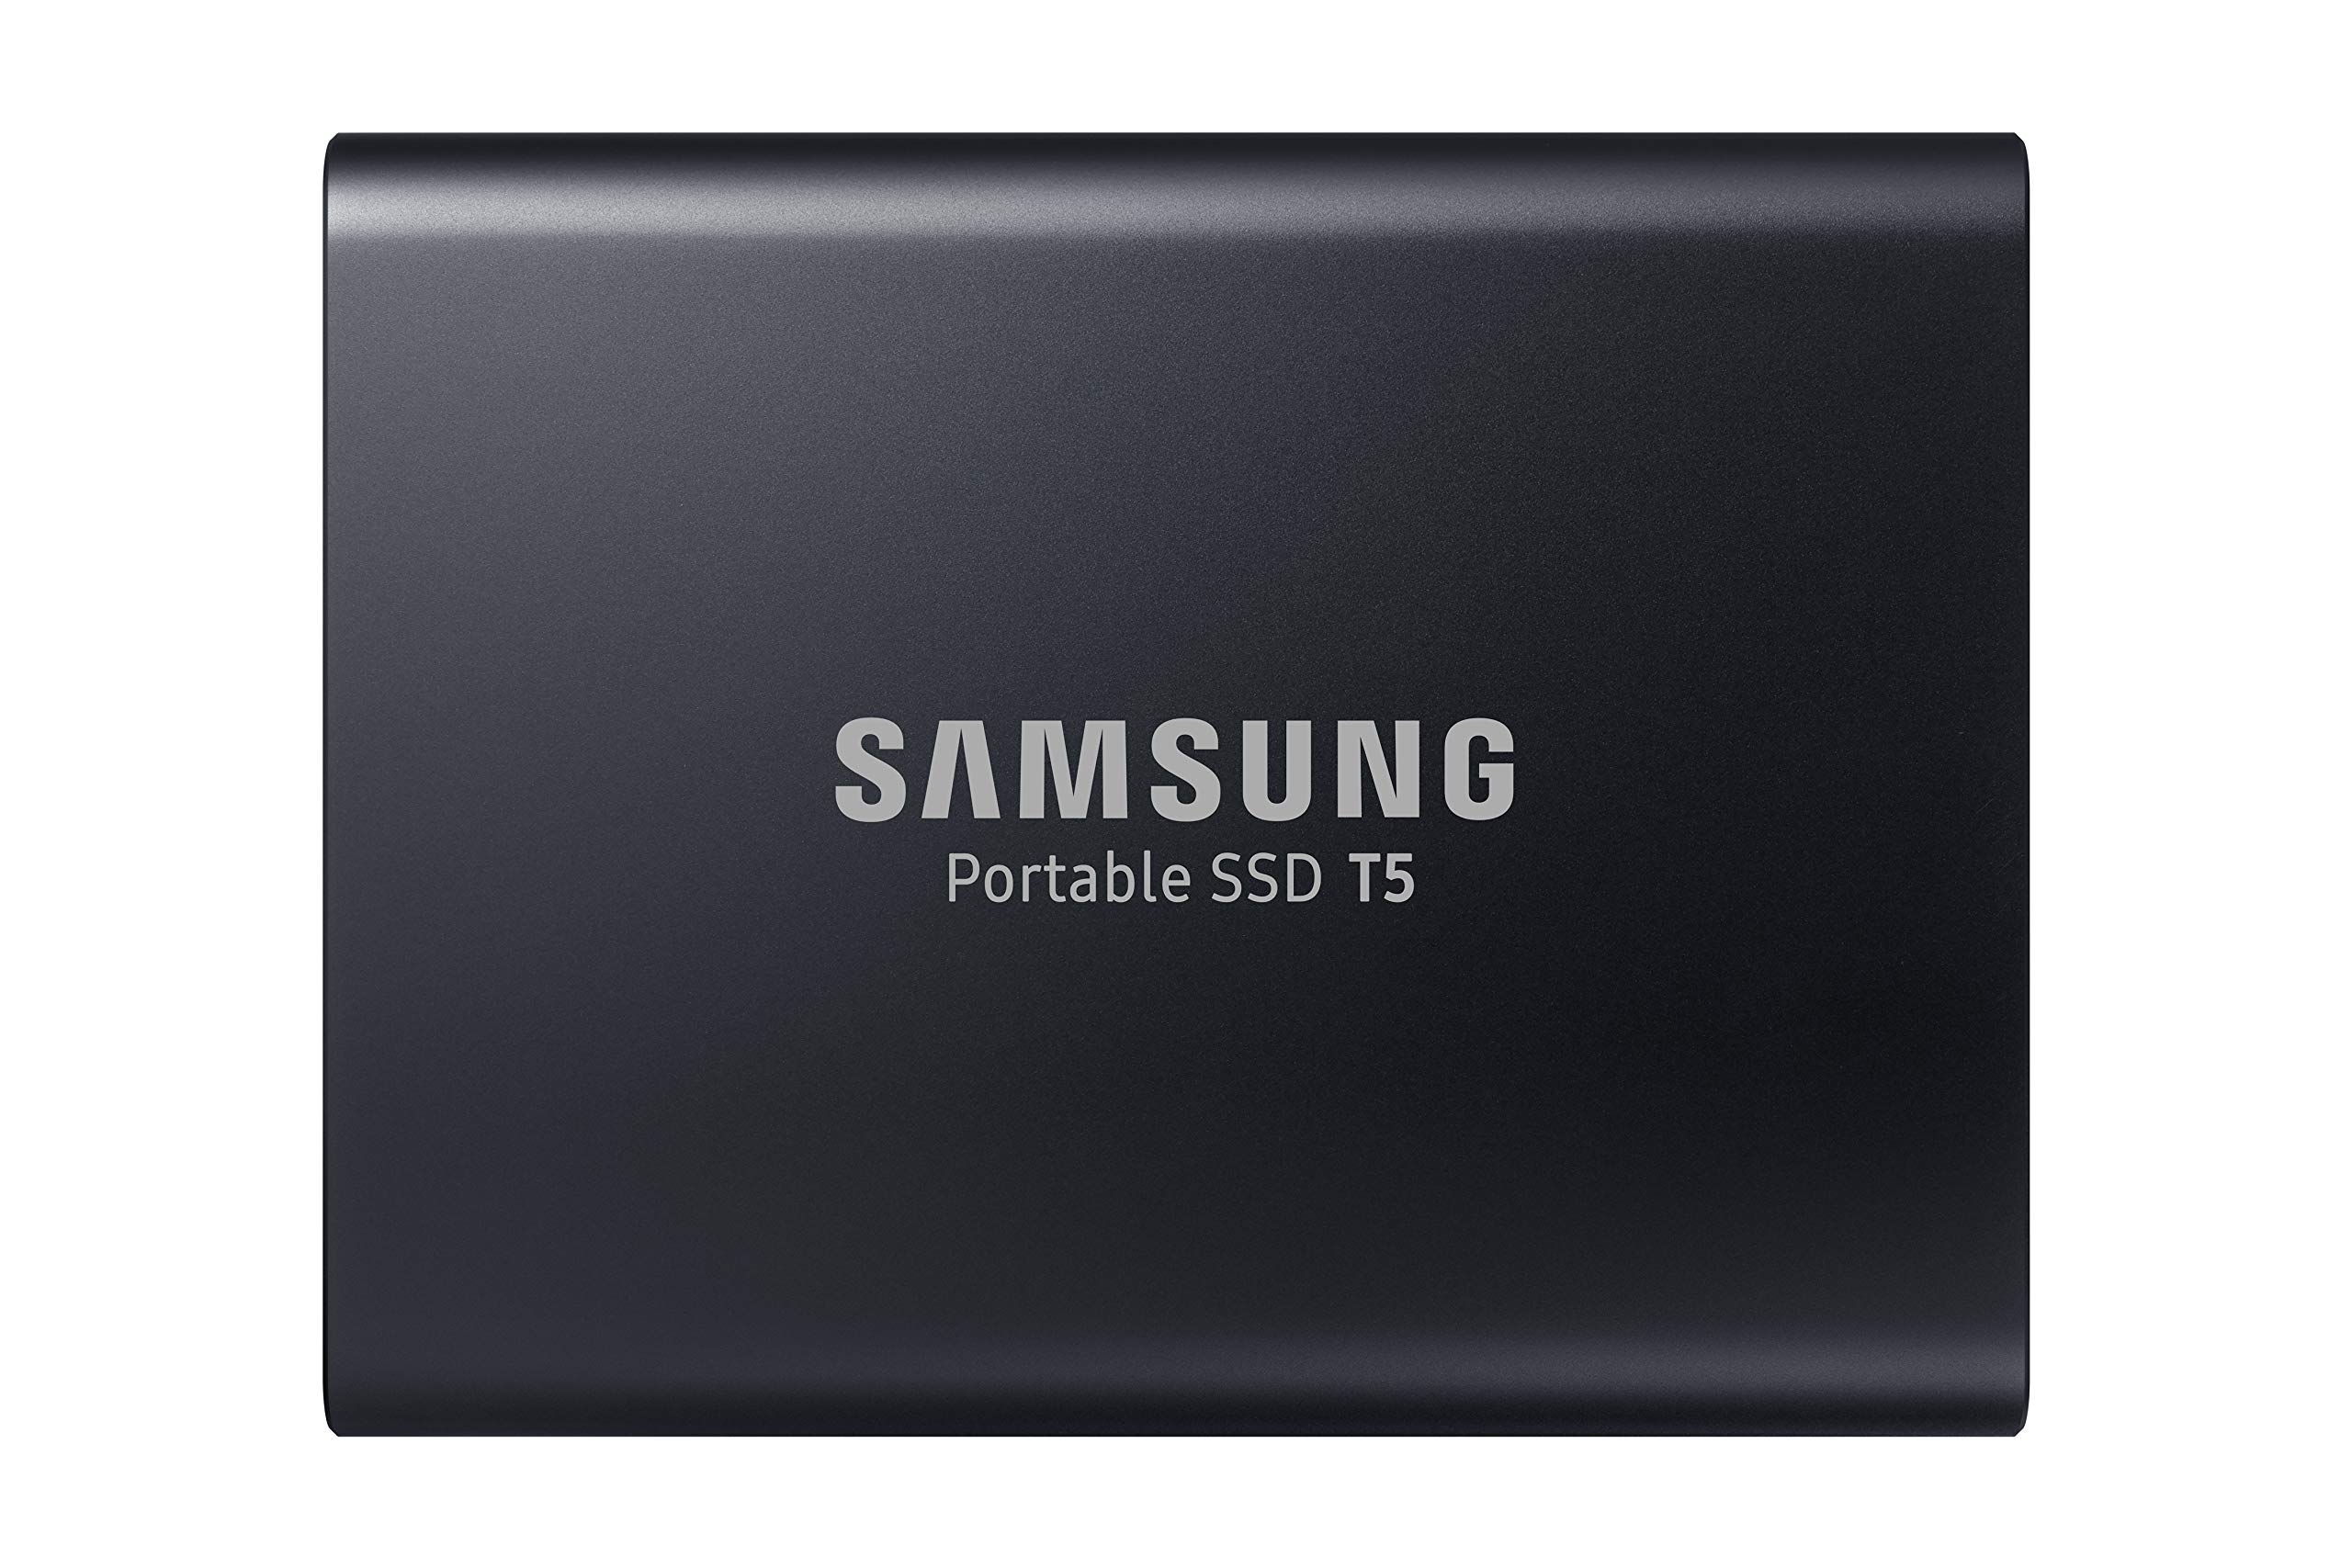 Samsung T5 Portable SSD - 1TB - USB 3.1 External SSD (MU-PA1T0B/AM), Black by Samsung